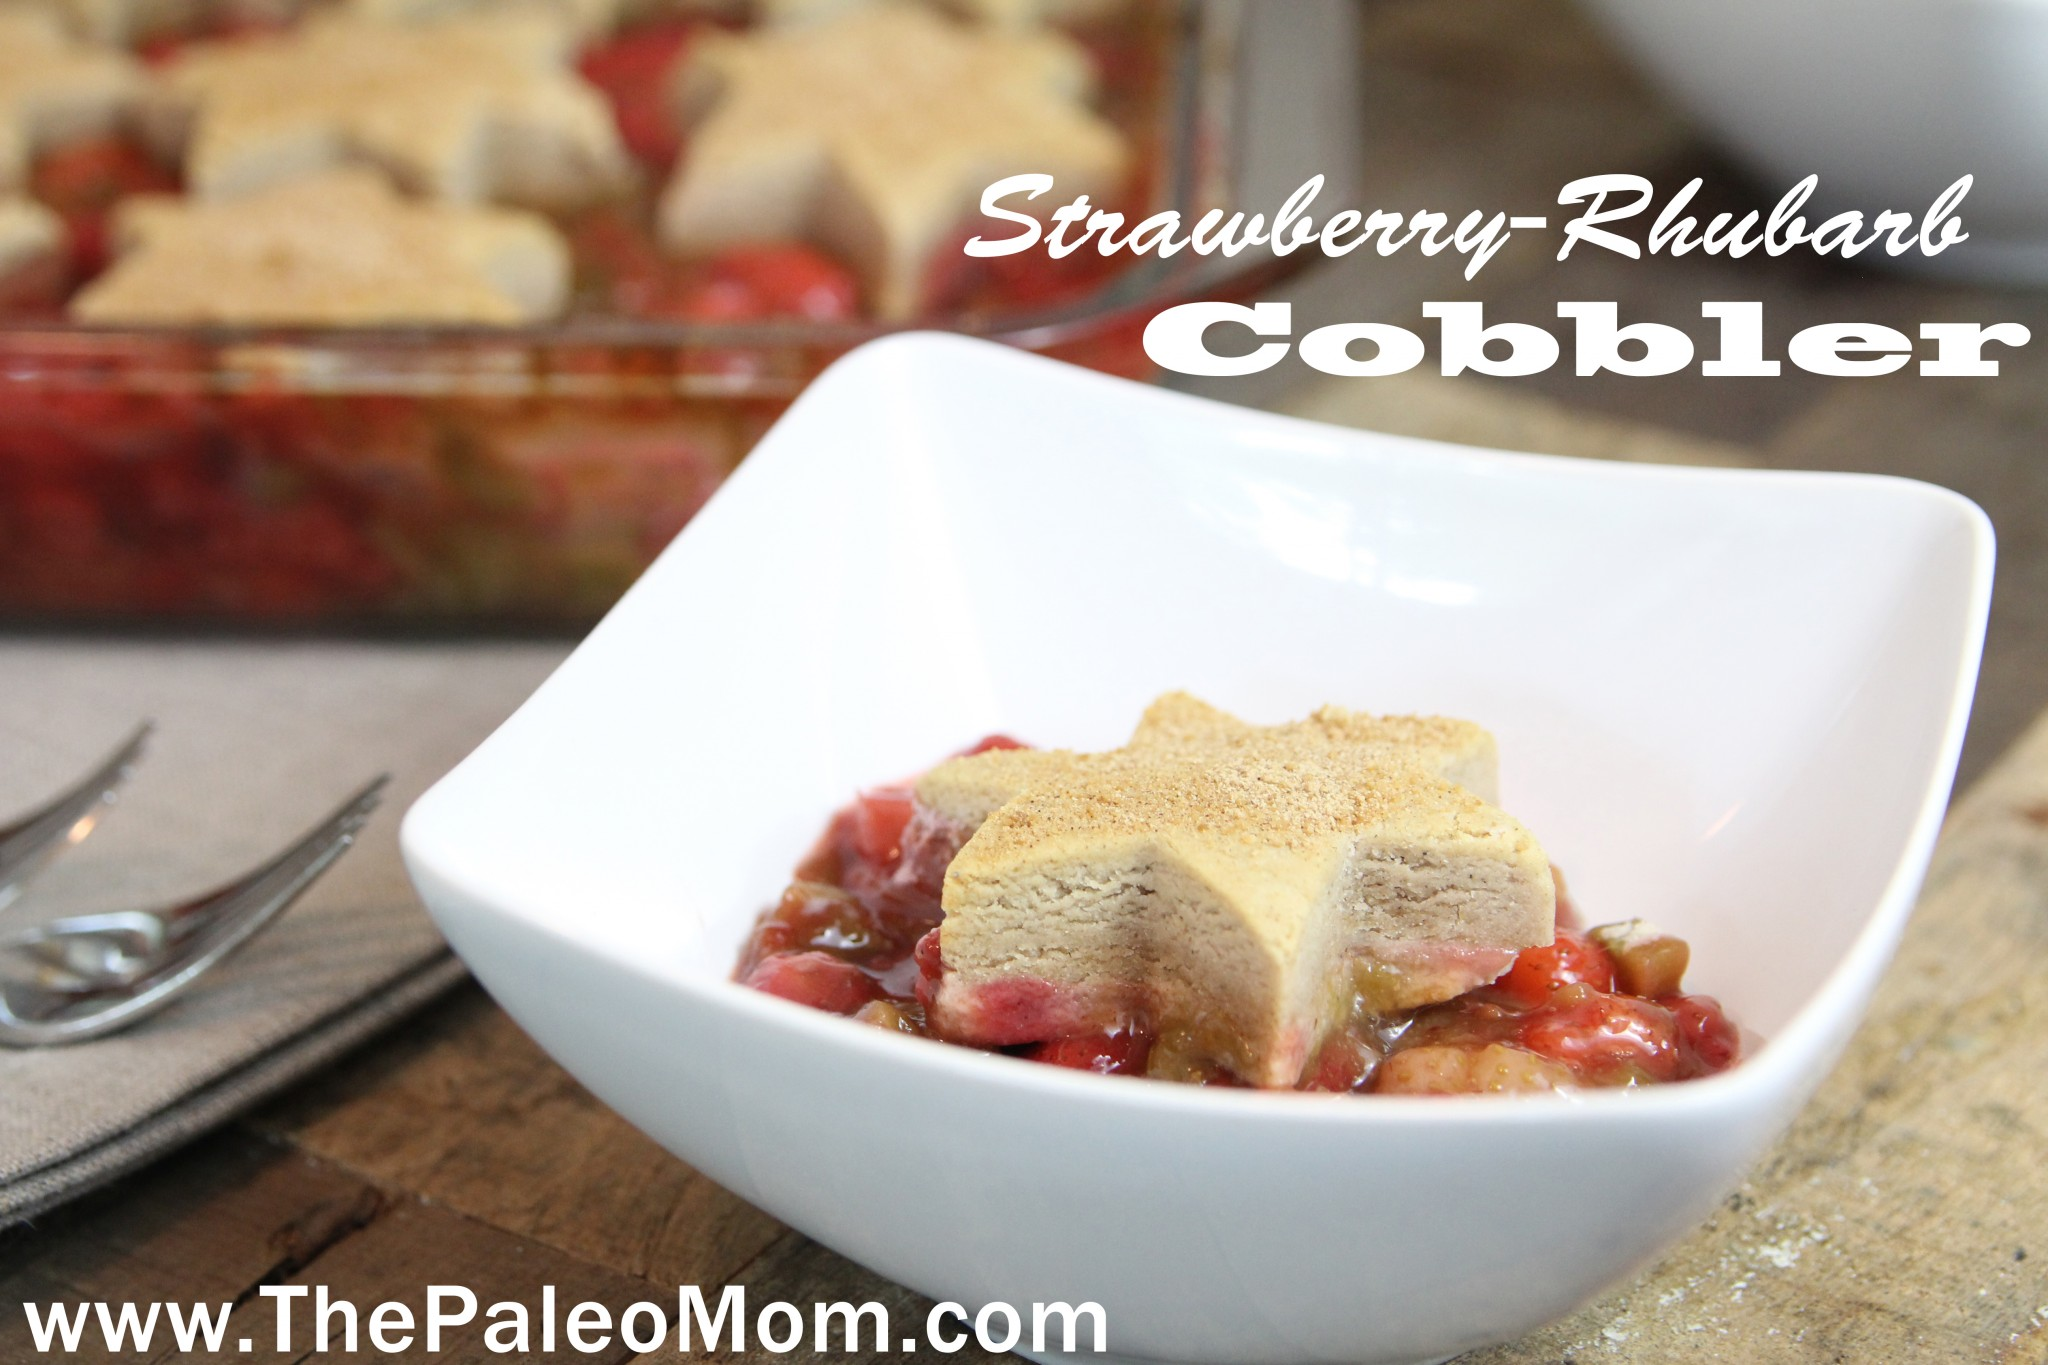 Strawberry-Rhubarb Cobbler 2